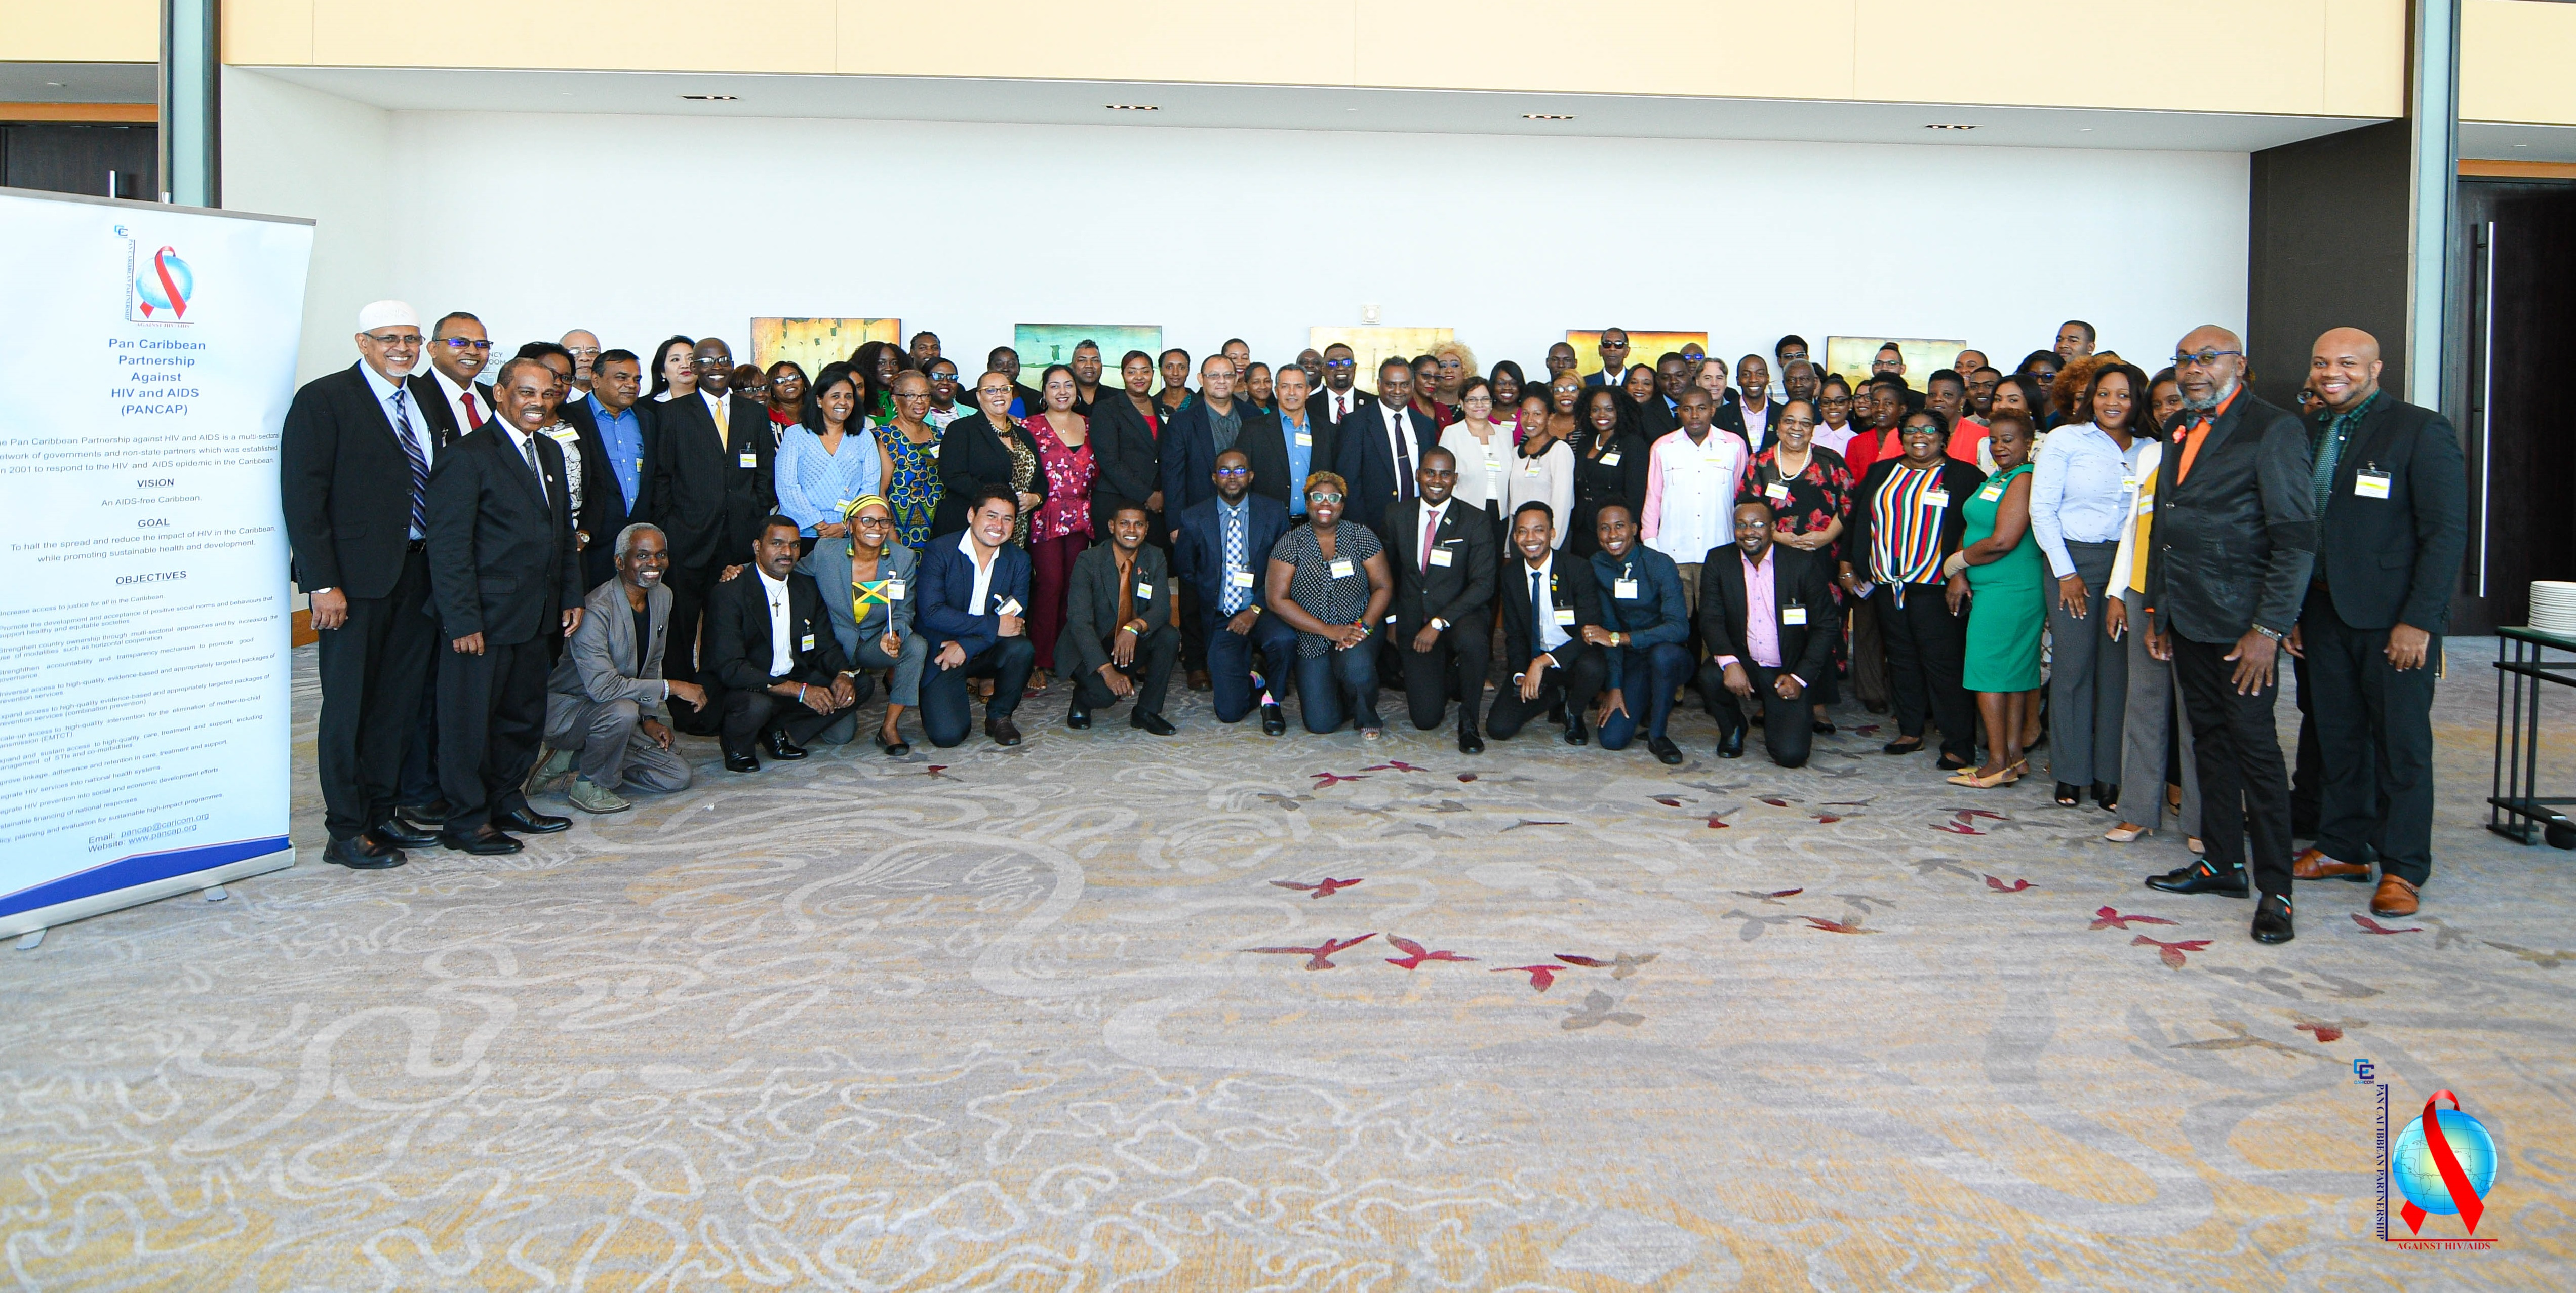 Participants of the Second joint regional dialogue with parliamentarians, faith leaders, civil society leaders, national AIDS programme managers and youth leaders.